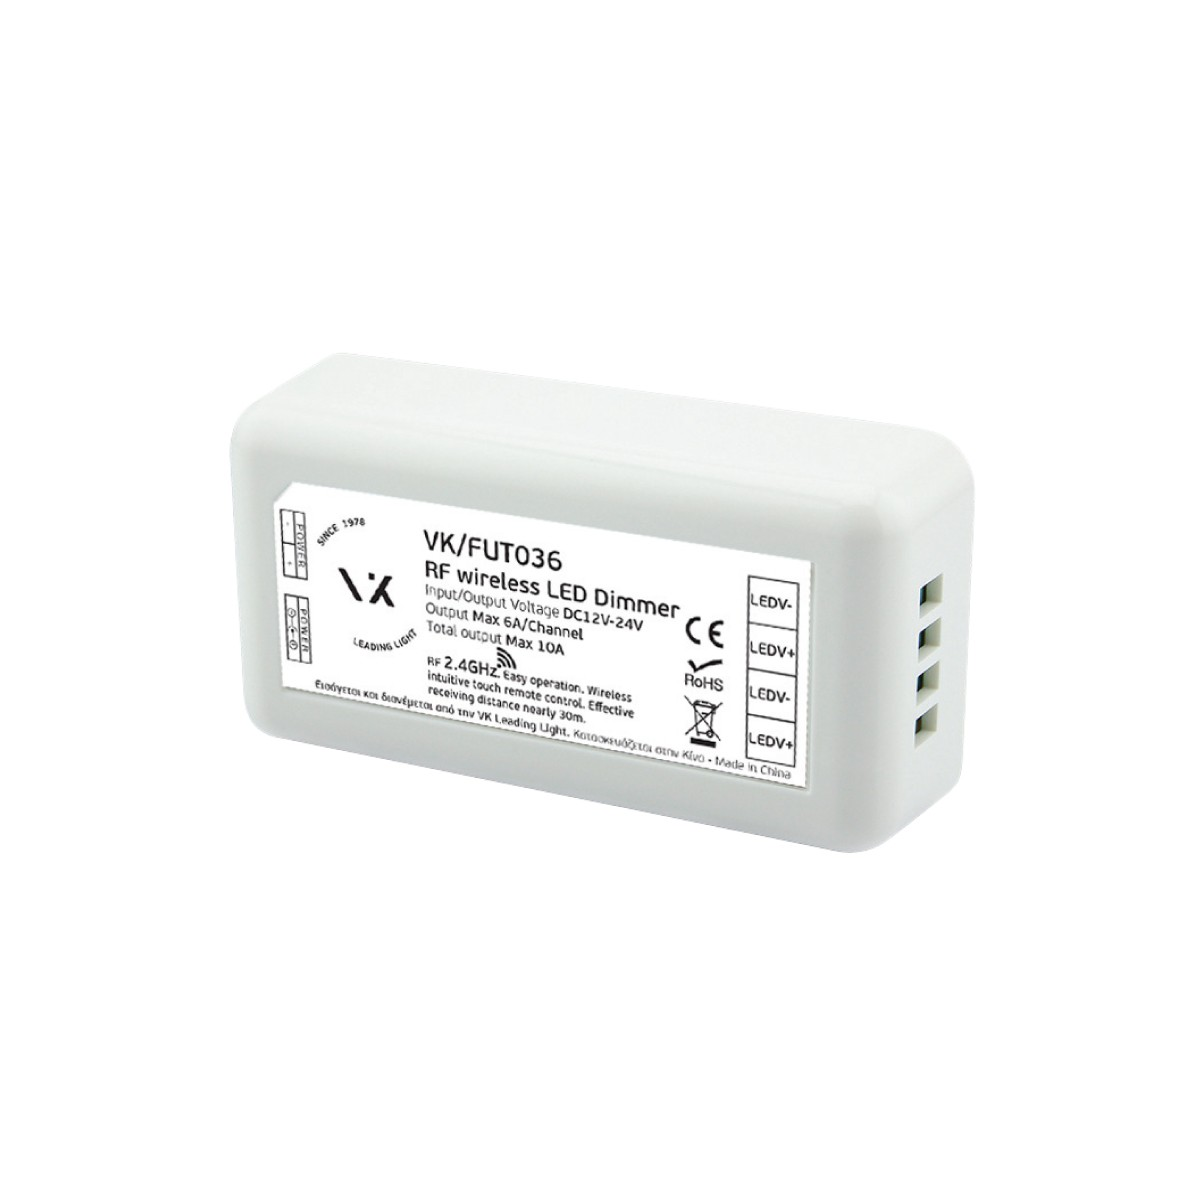 Controller, 1 channel, DC12-24V, Dimmable VK/FUT036